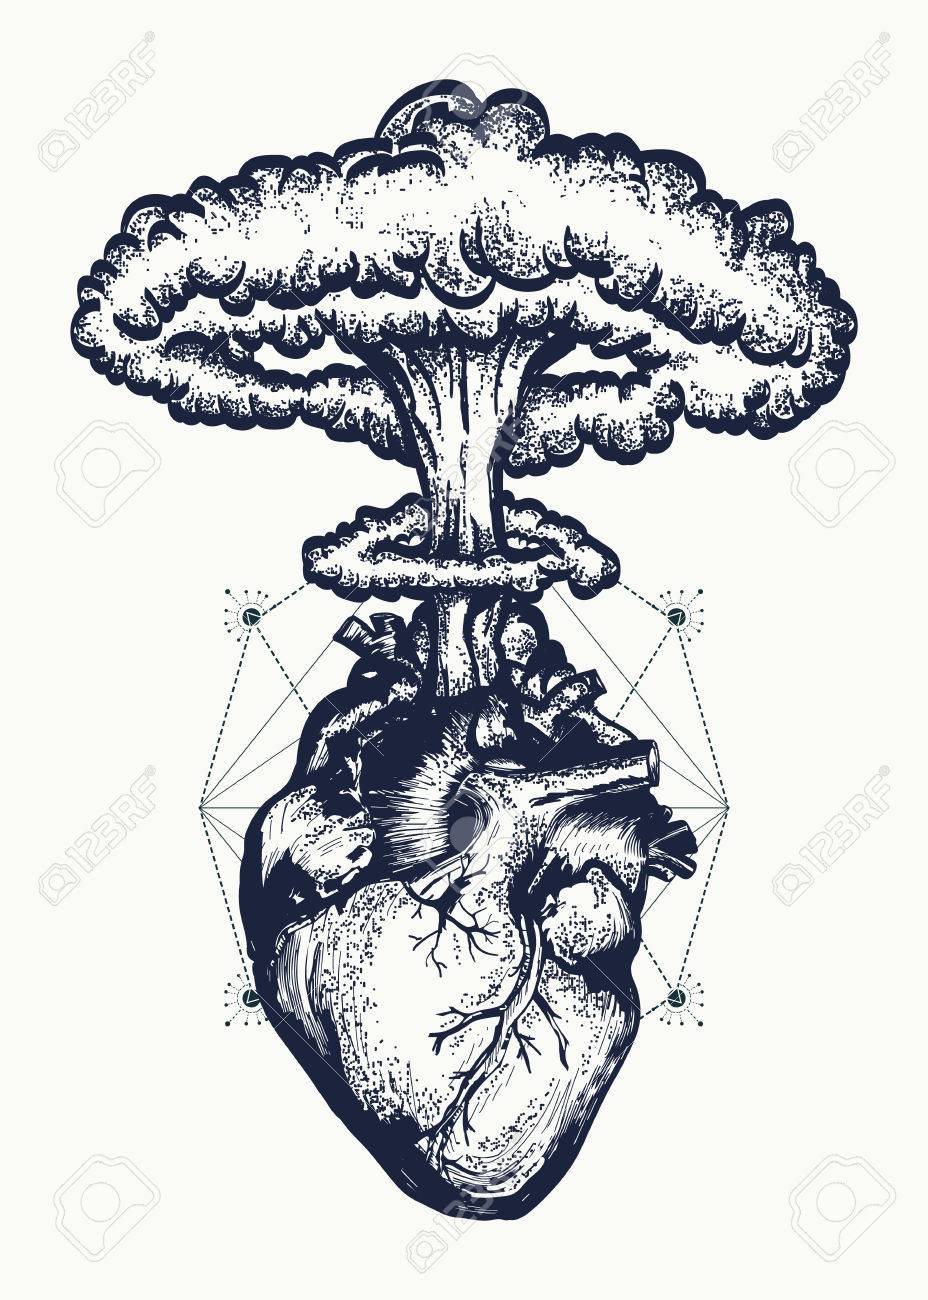 Heart And Nuclear Explosion Tattoo Art. Symbol Of Love, Feelings ...